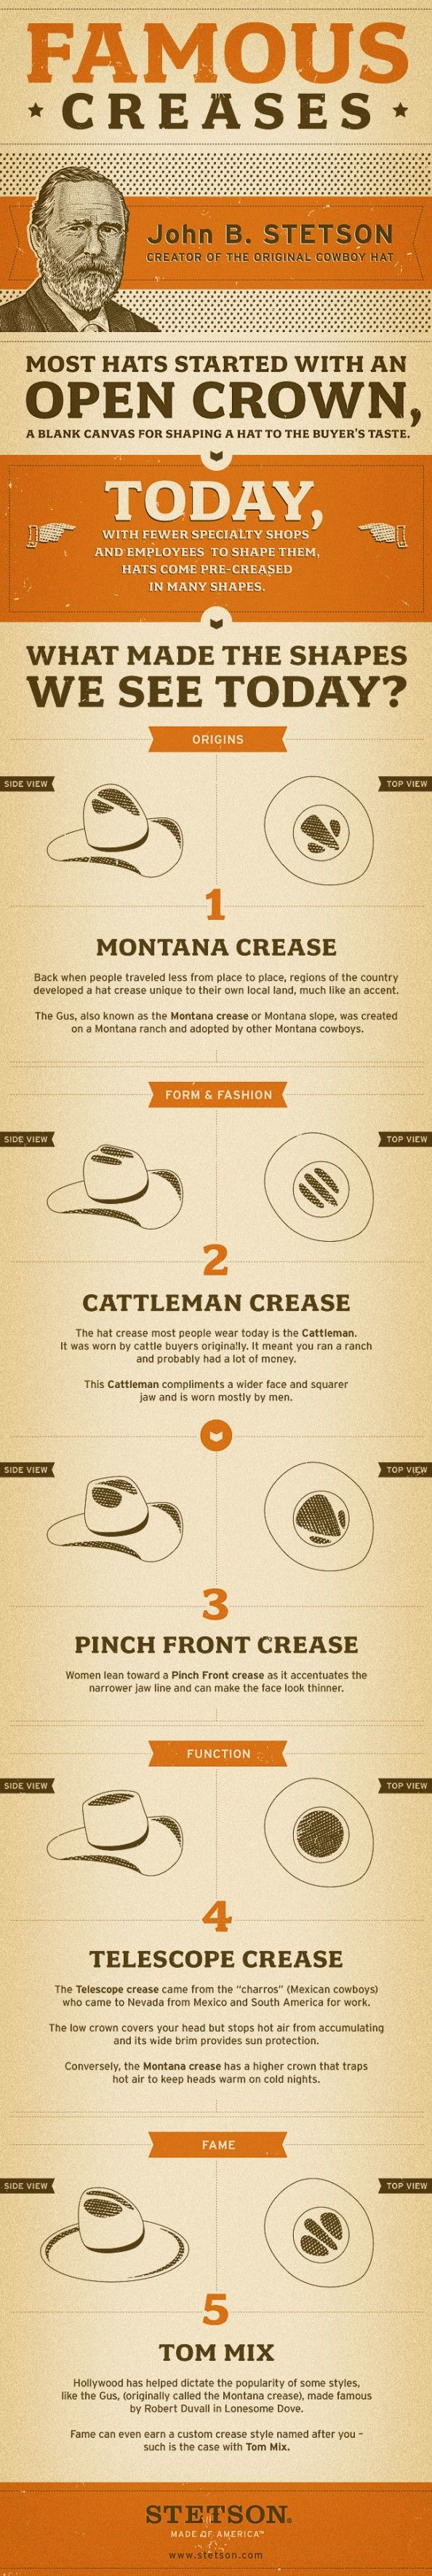 The Many Famous Creases of a Stetson Hat Infographic So fitting for Rodeo Season